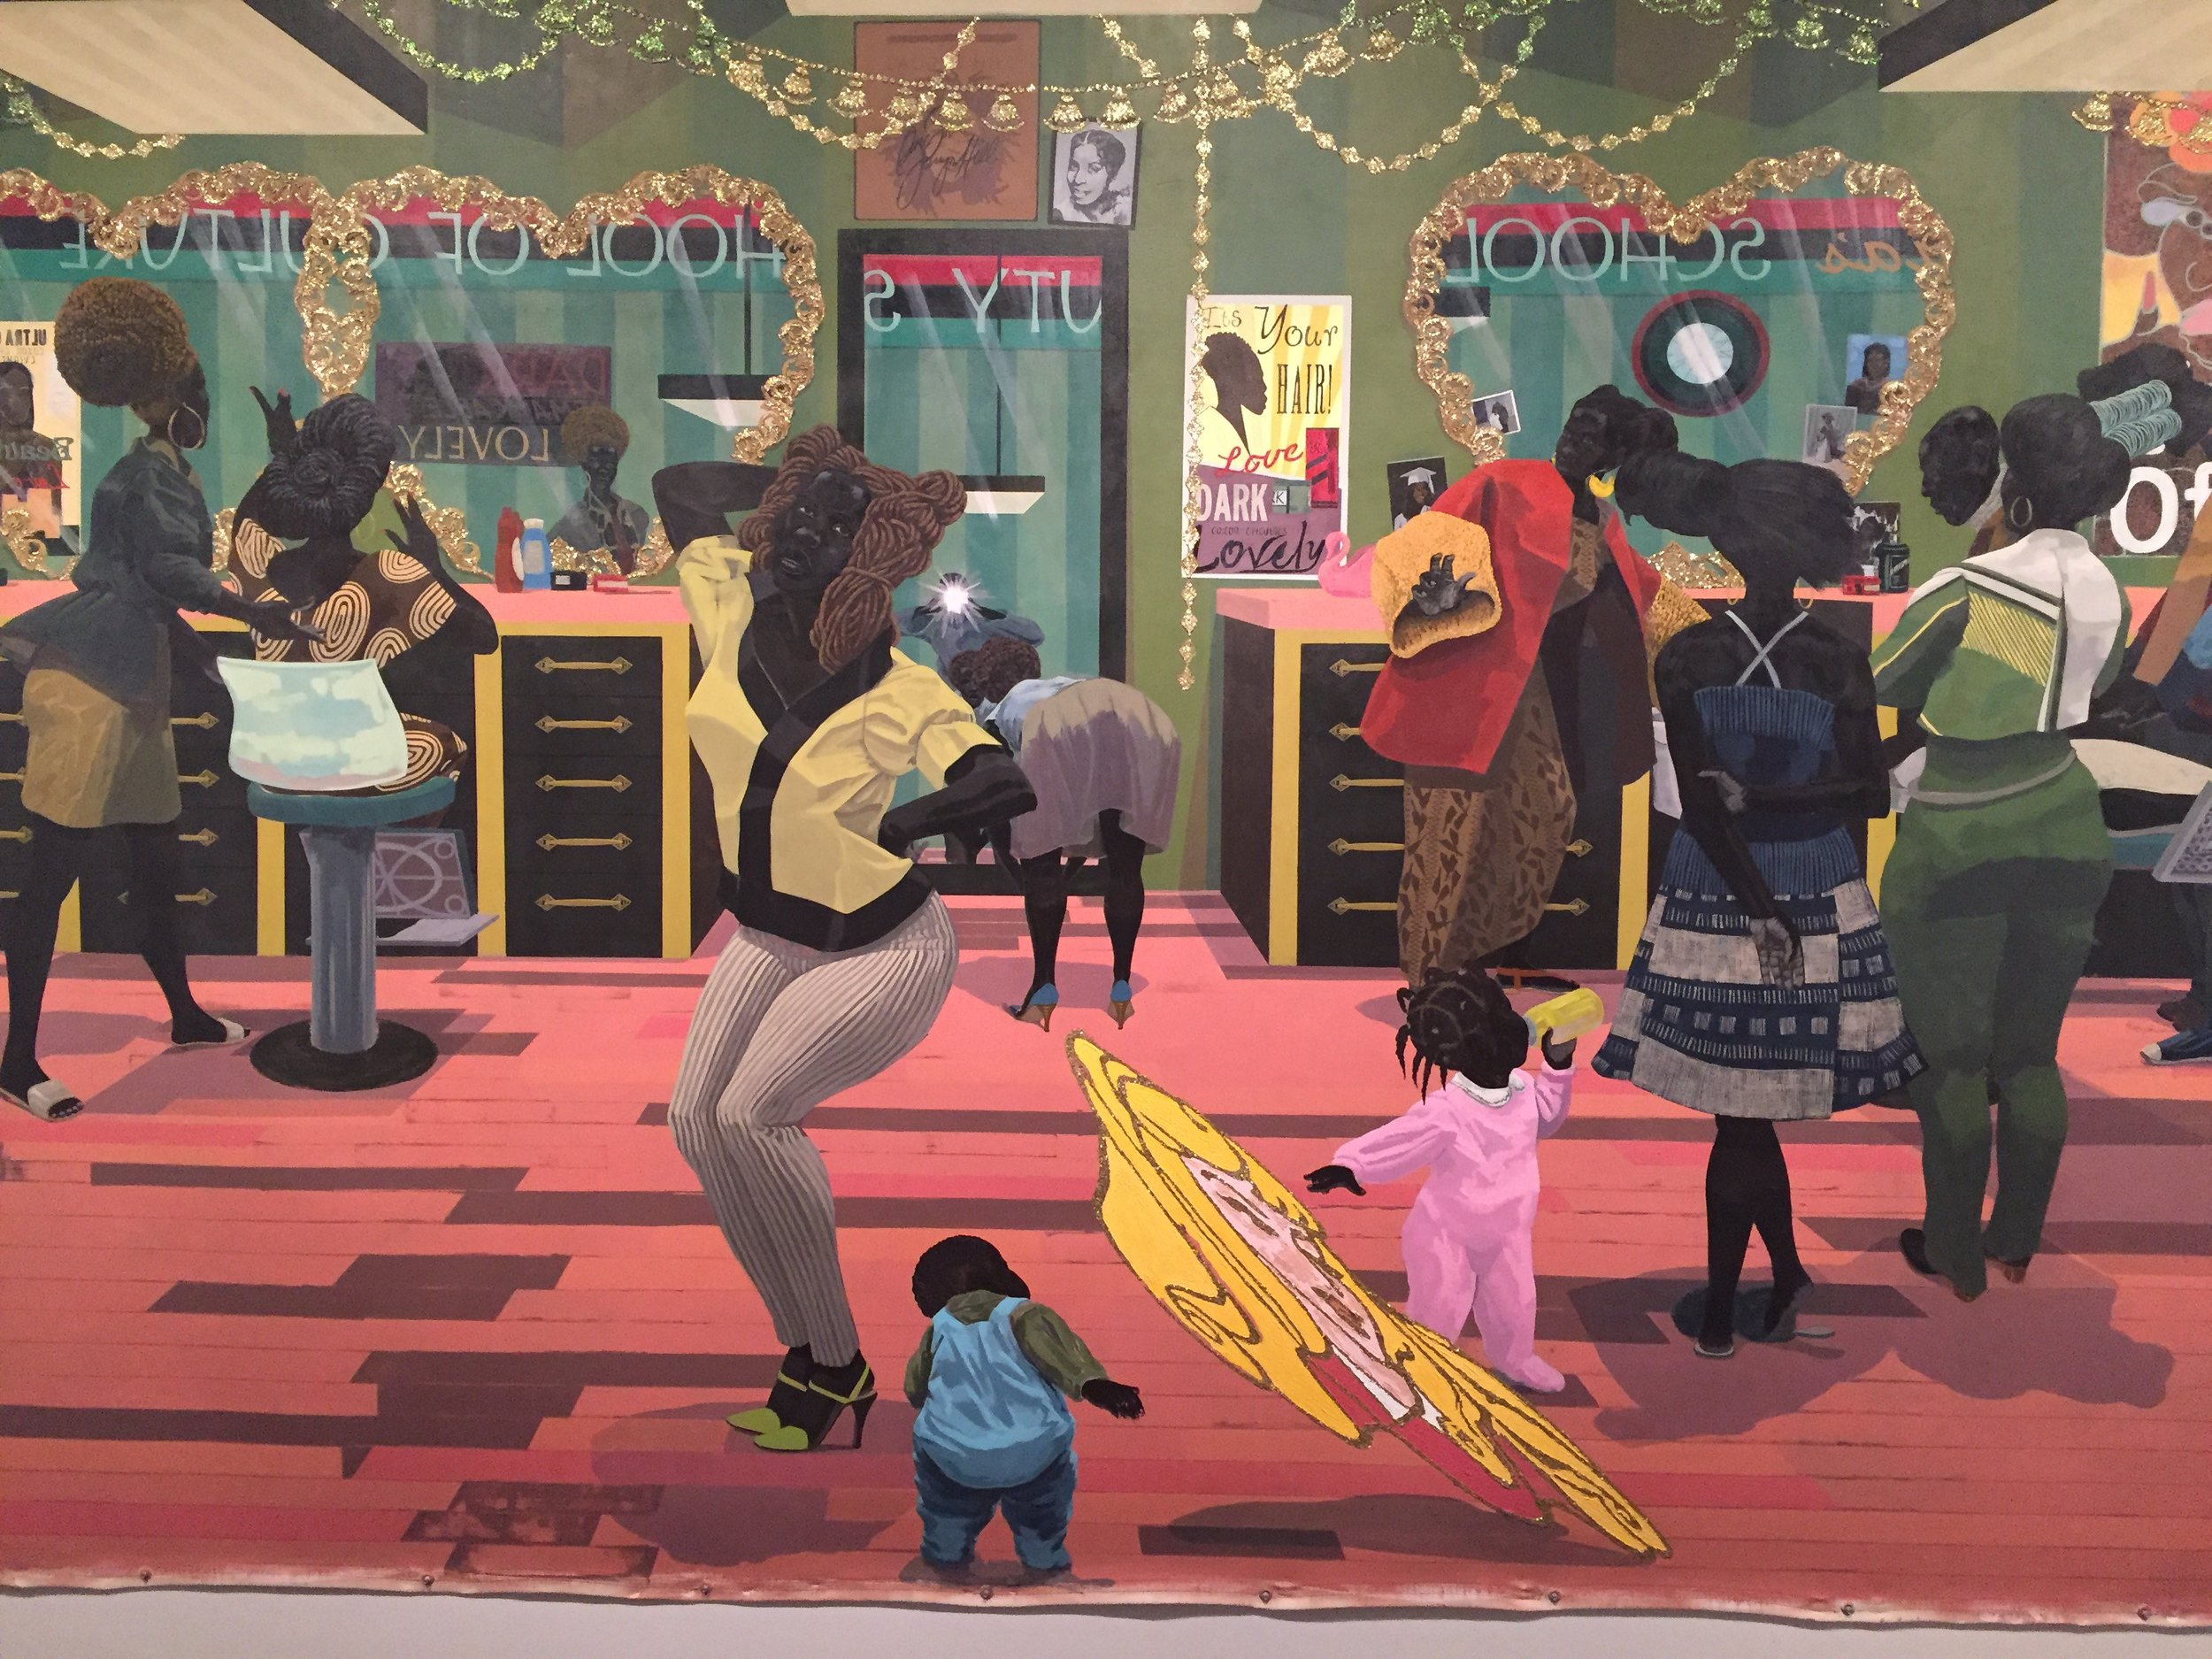 """Kerry James Marshall. """"School of Beauty, School of Culture,"""" 2012. Acrylic and glitter on canvas. 8 ft. 11 7/8 in. × 13 ft. 1 7/8 in. Birmingham Museum of Art, Museum purchase with funds provided by Elizabeth (Bibby) Smith/"""